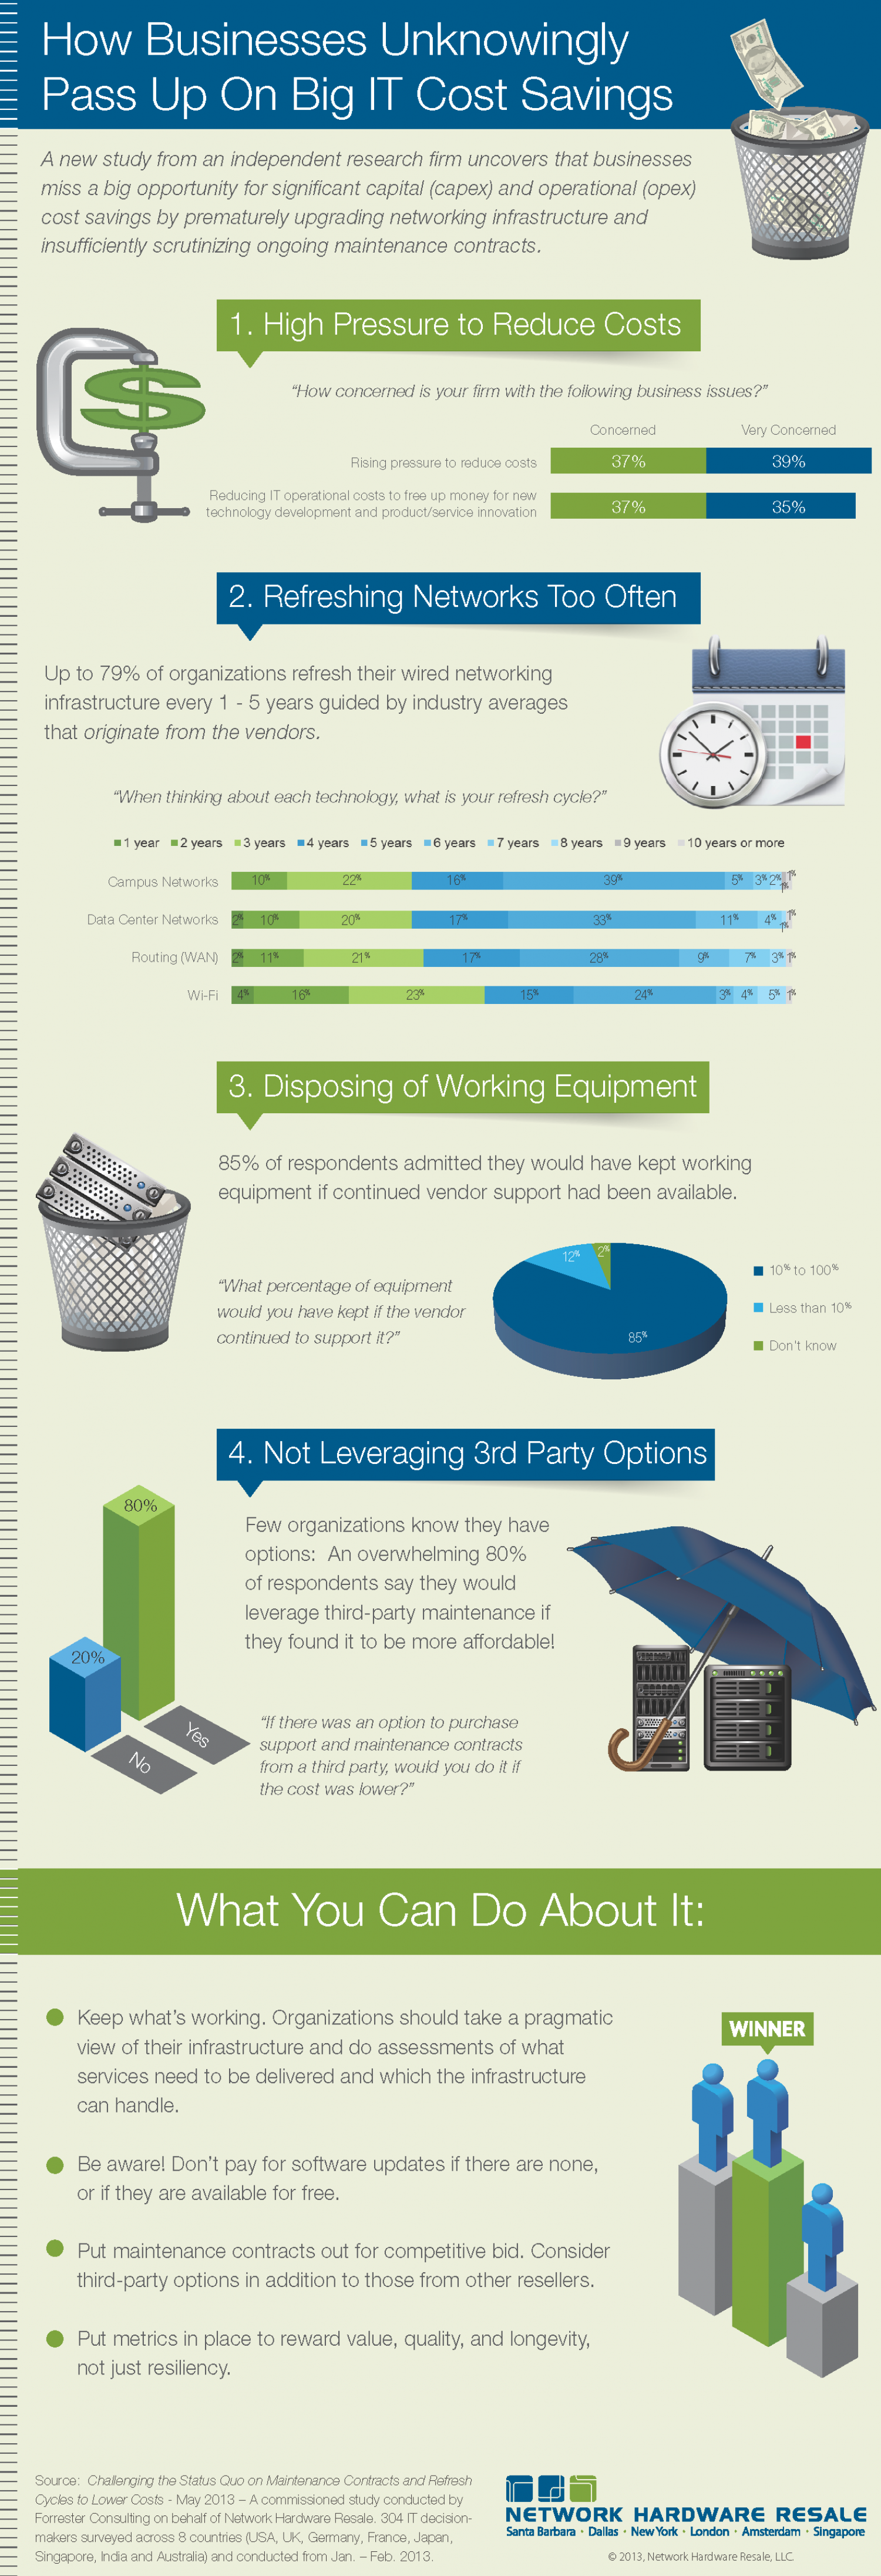 How Businesses Unknowingly Pass on Big IT Cost Savings Infographic